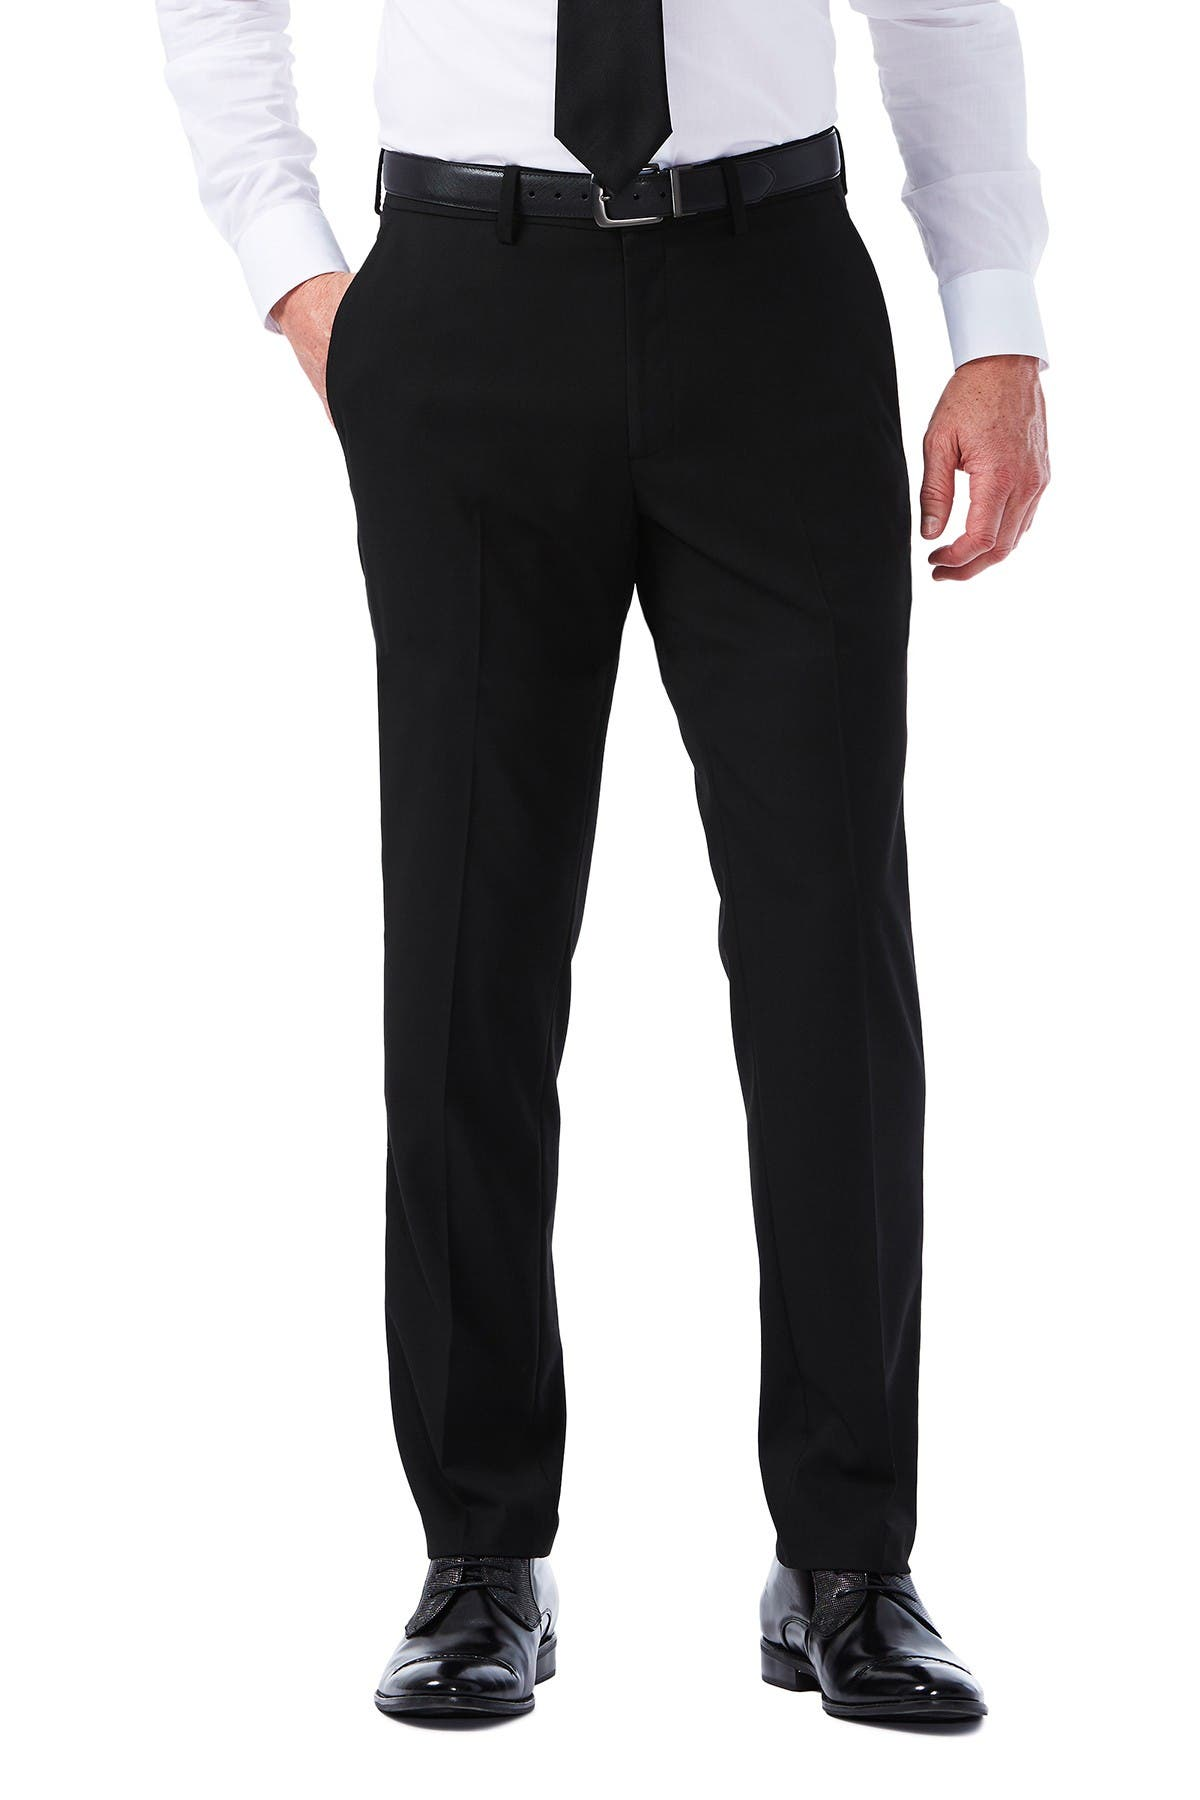 "Image of HAGGAR Sharkskin Stretch Slim Fit Flat Front Suit Separate Pants - 30-34"" Inseam"